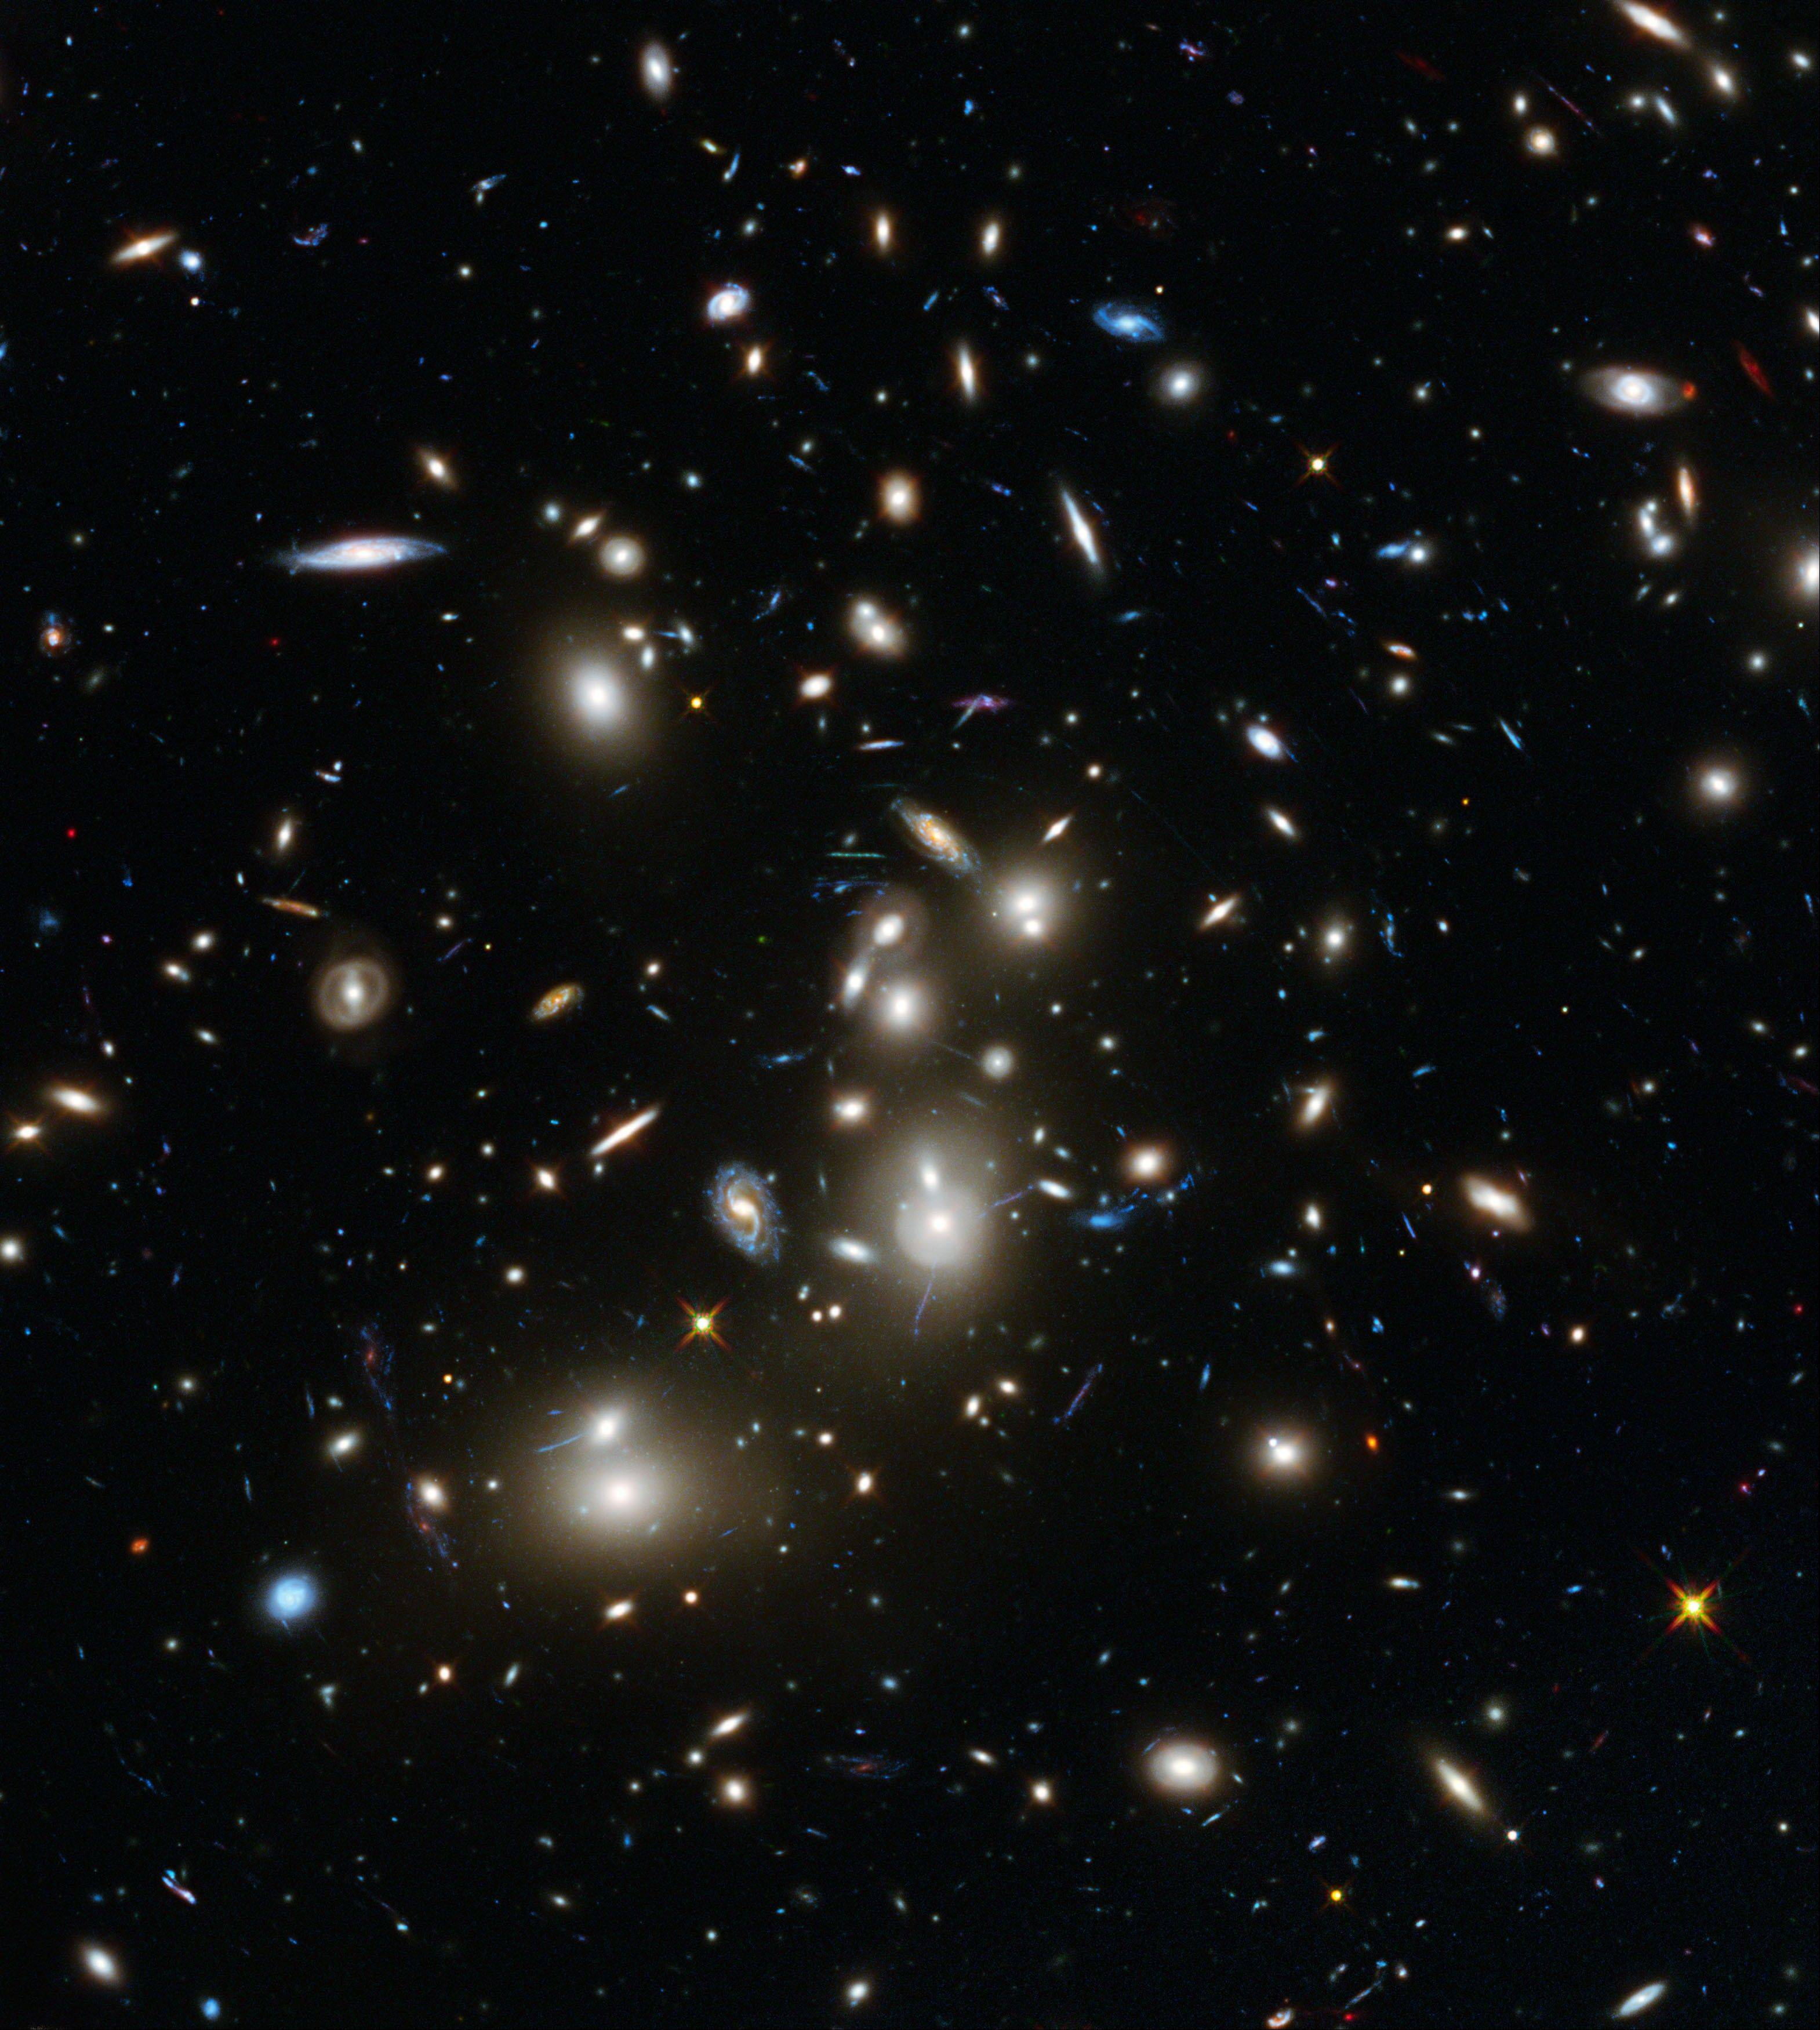 This undated image made available by the European Space Agency and NASA on Tuesday shows galaxies in the Abell 2744 cluster, and blue galaxies behind it, distorted and amplified by gravitational lensing. The long-exposure image taken with NASA�s Hubble Space Telescope shows some of the intrinsically faintest and youngest galaxies ever detected in visible light.